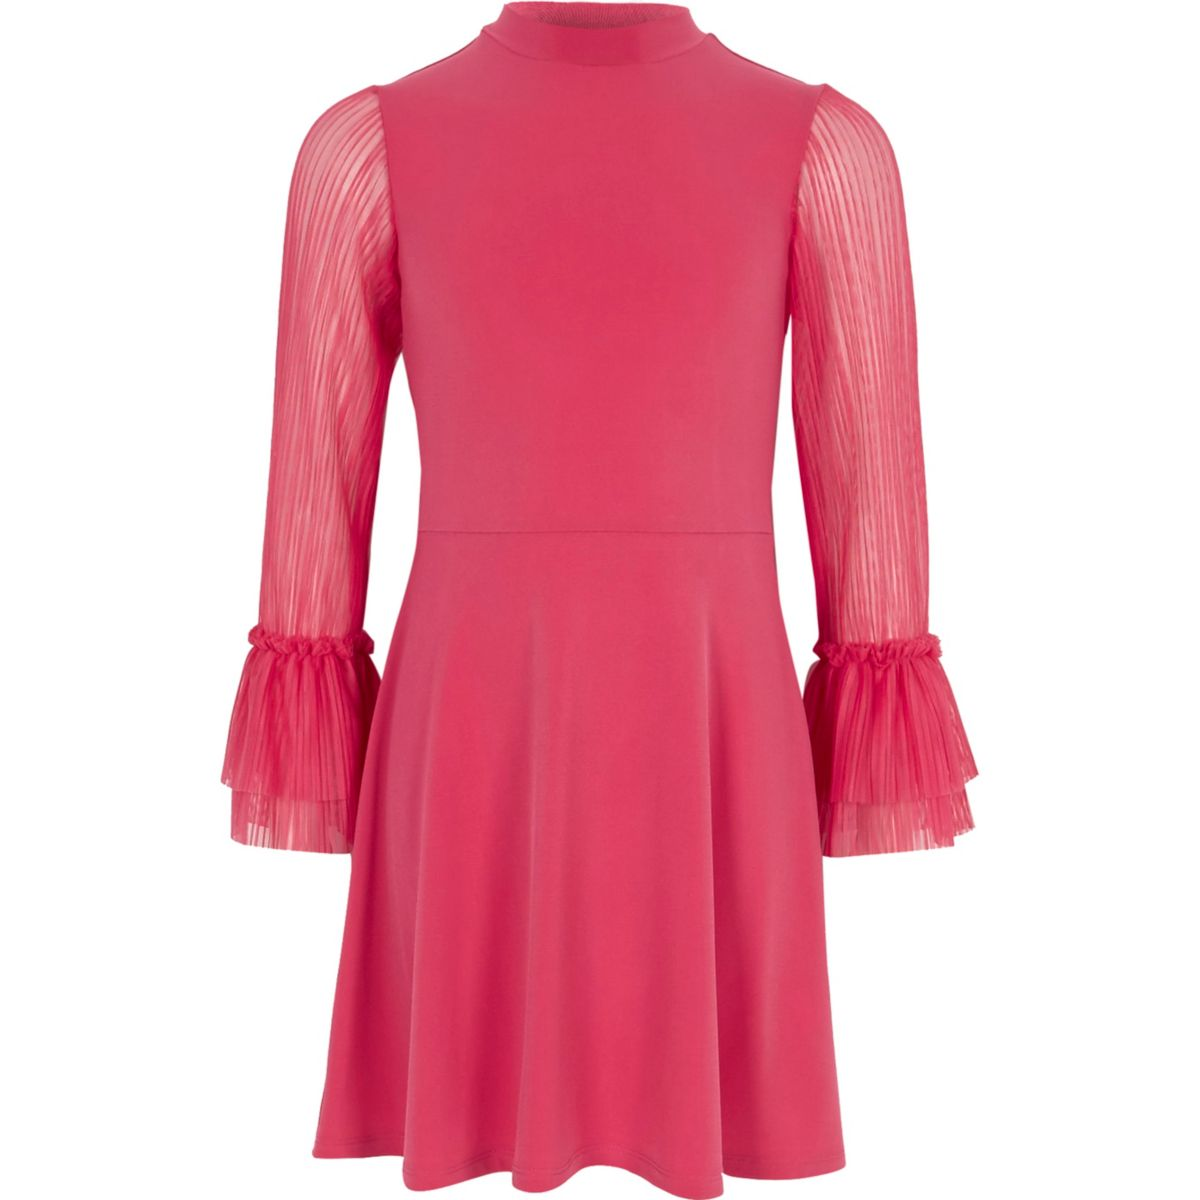 Girls pink pleated sleeve skater dress